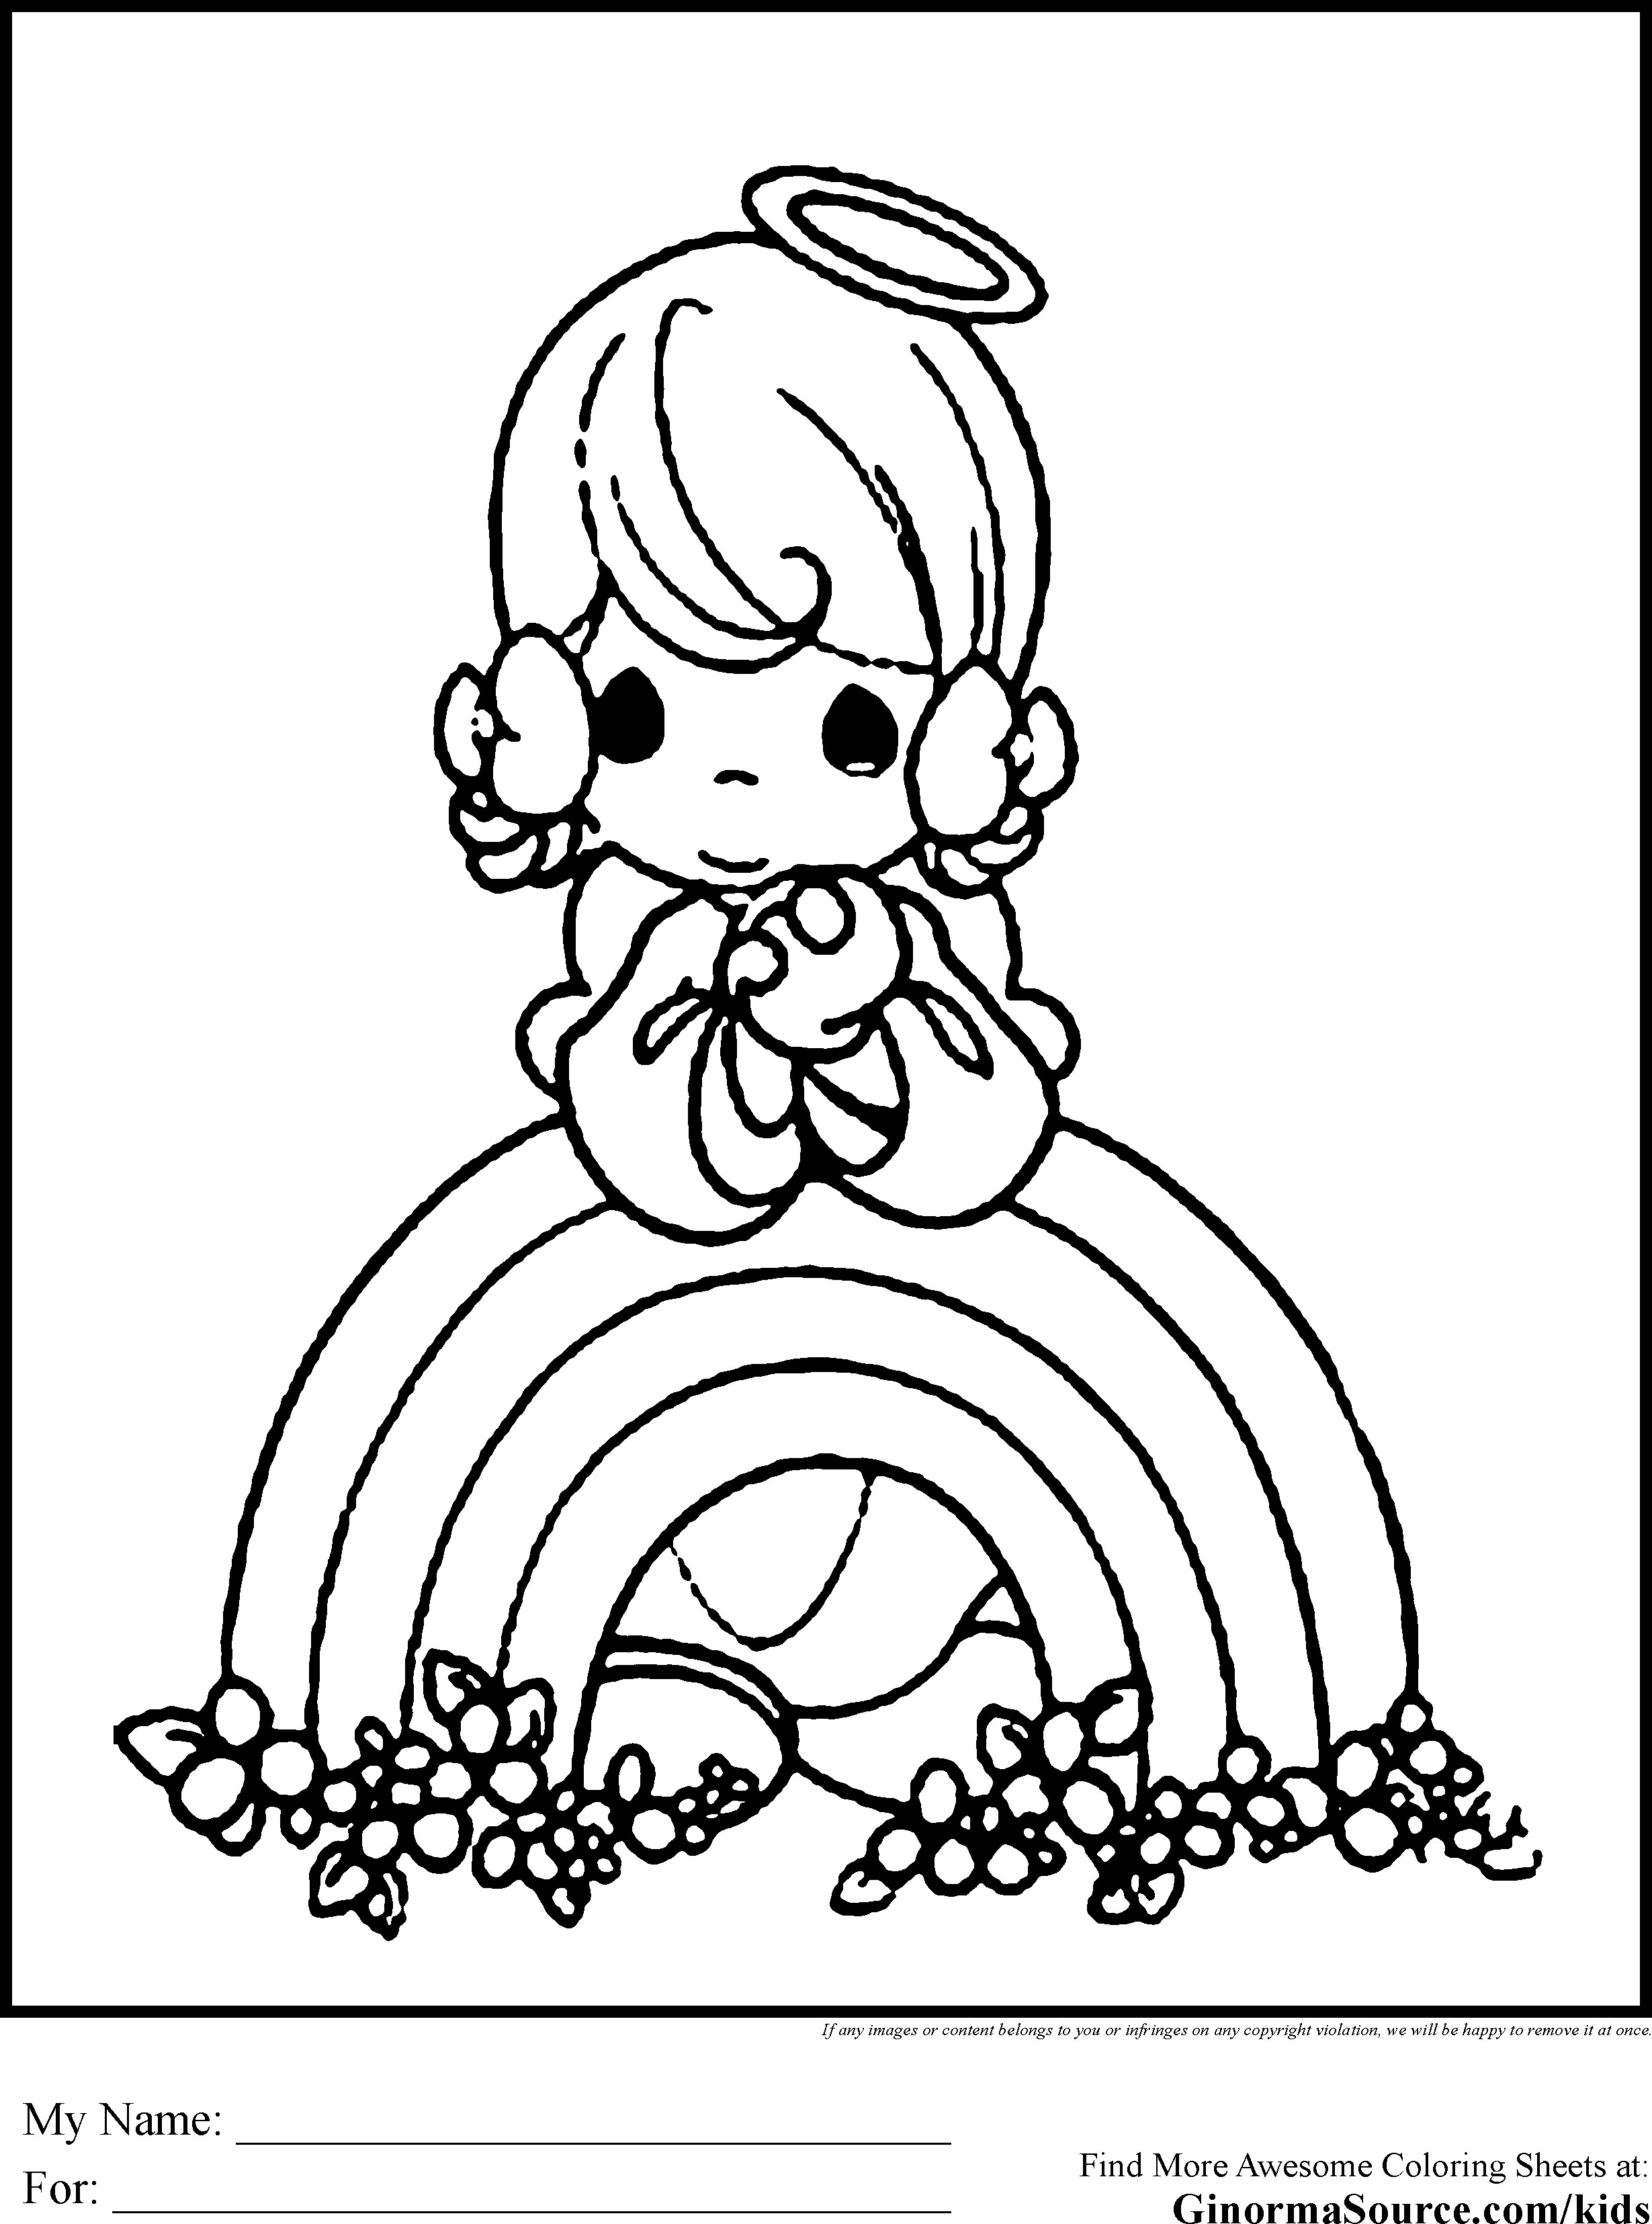 Coloring Pages For Girls That You Can Print  Coloring Pages For Girls That You Can Print – Color Bros